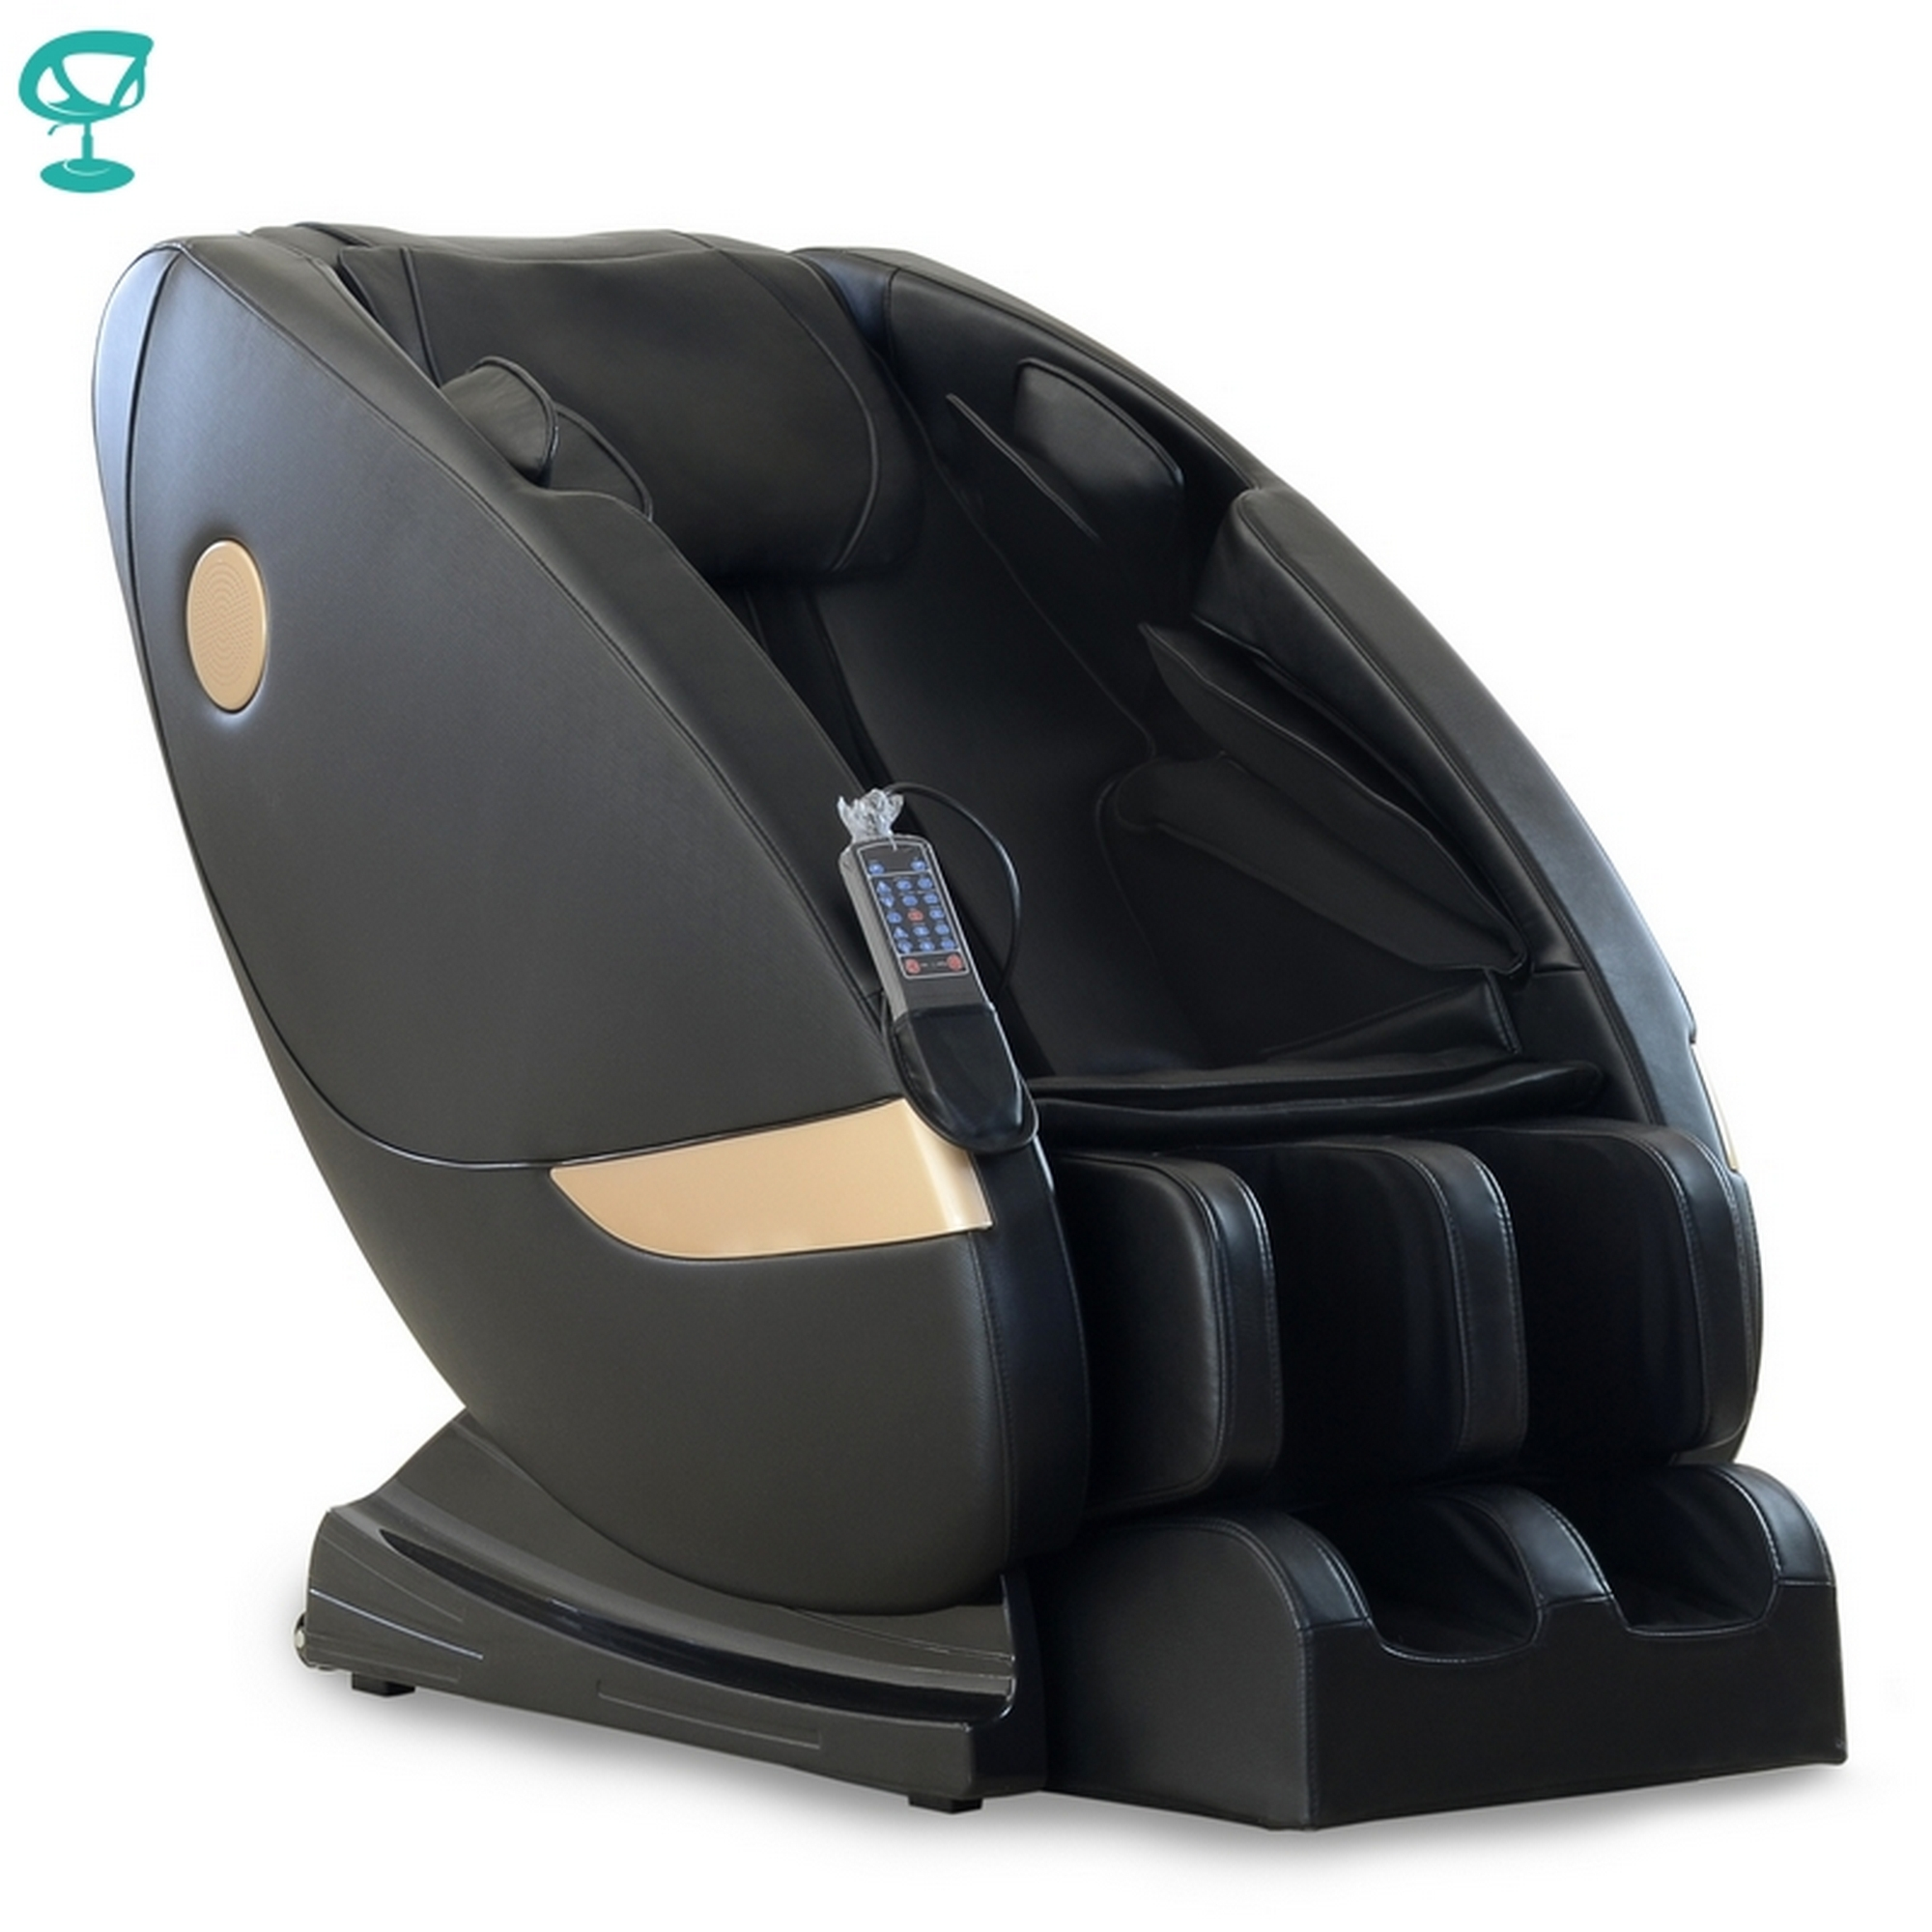 95685 Barneo MC-10 Chair Massage Black Full Functional Chair Massage Chair With Massage Free Shipping To Russia